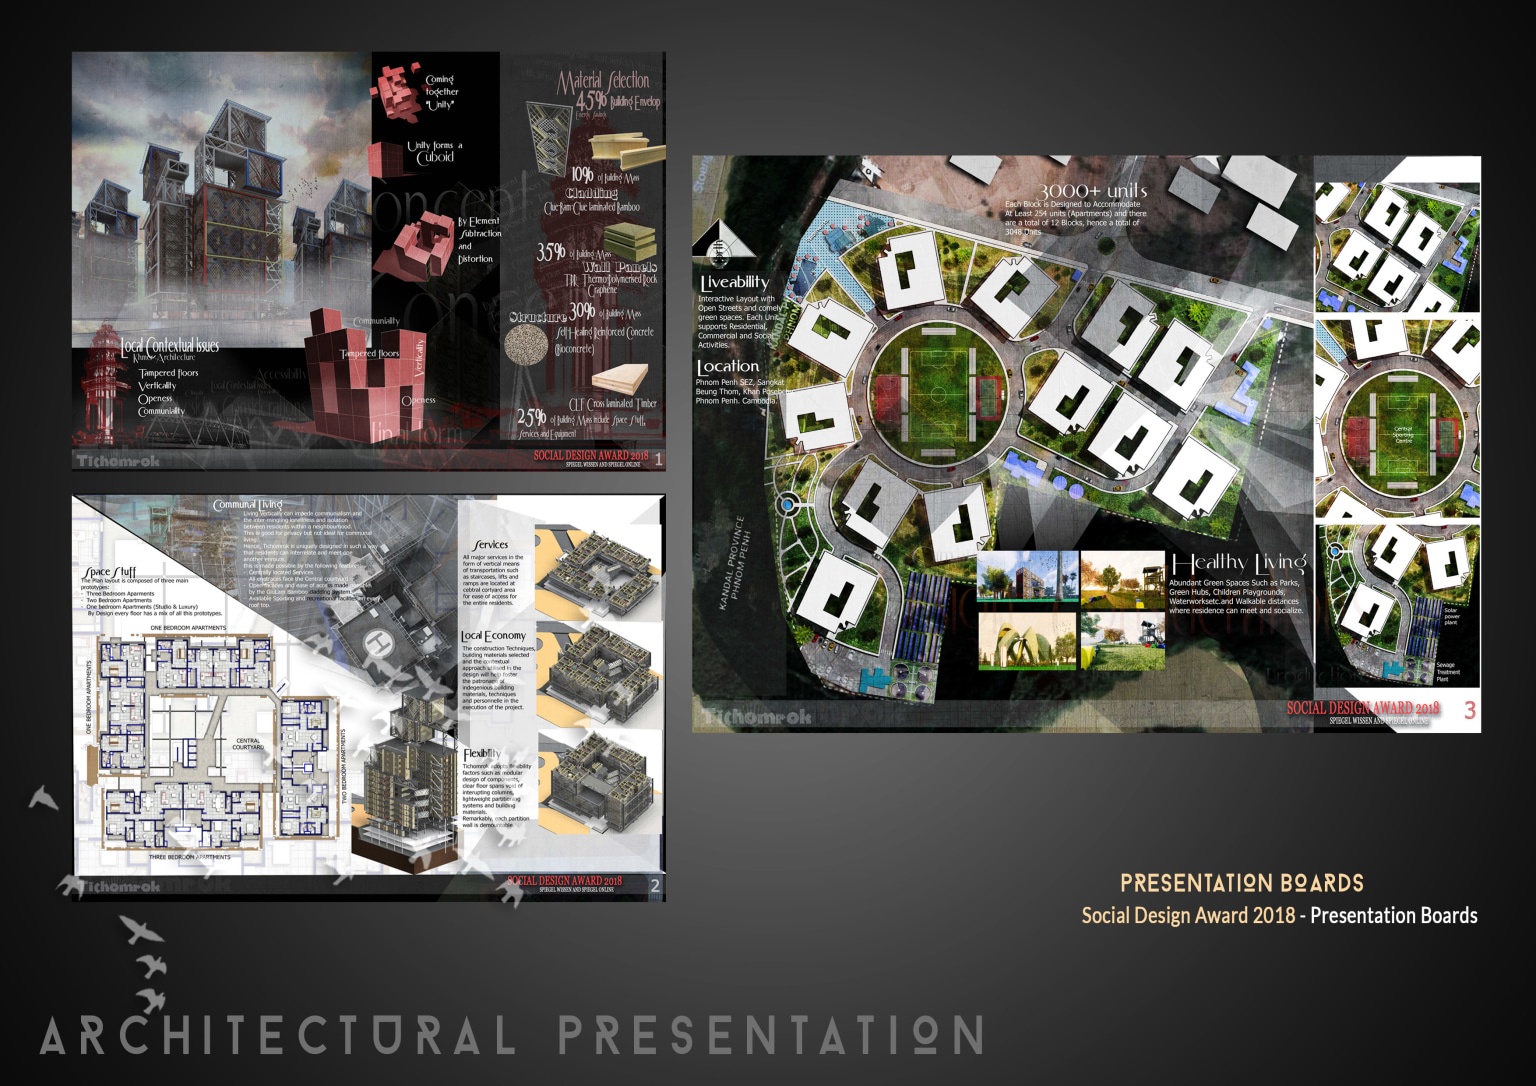 Social Design Award 2018 Presentation Boards